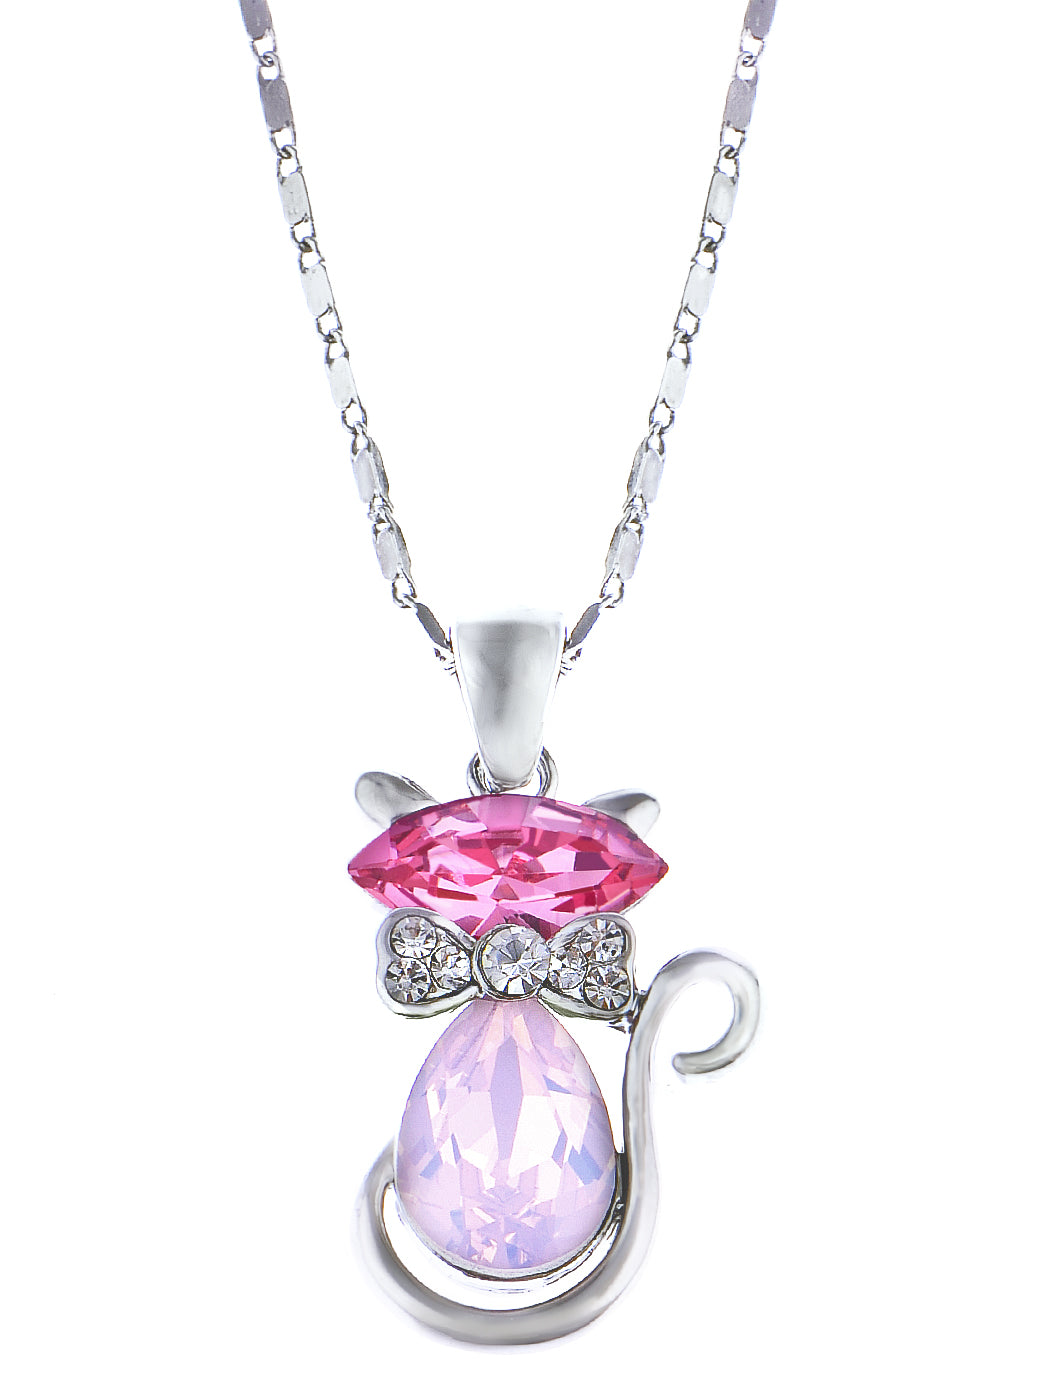 Swarovski Crystal Hot Fuchsia Pink Opal Bow Tie Siam Kitty Cat Pendant Necklace